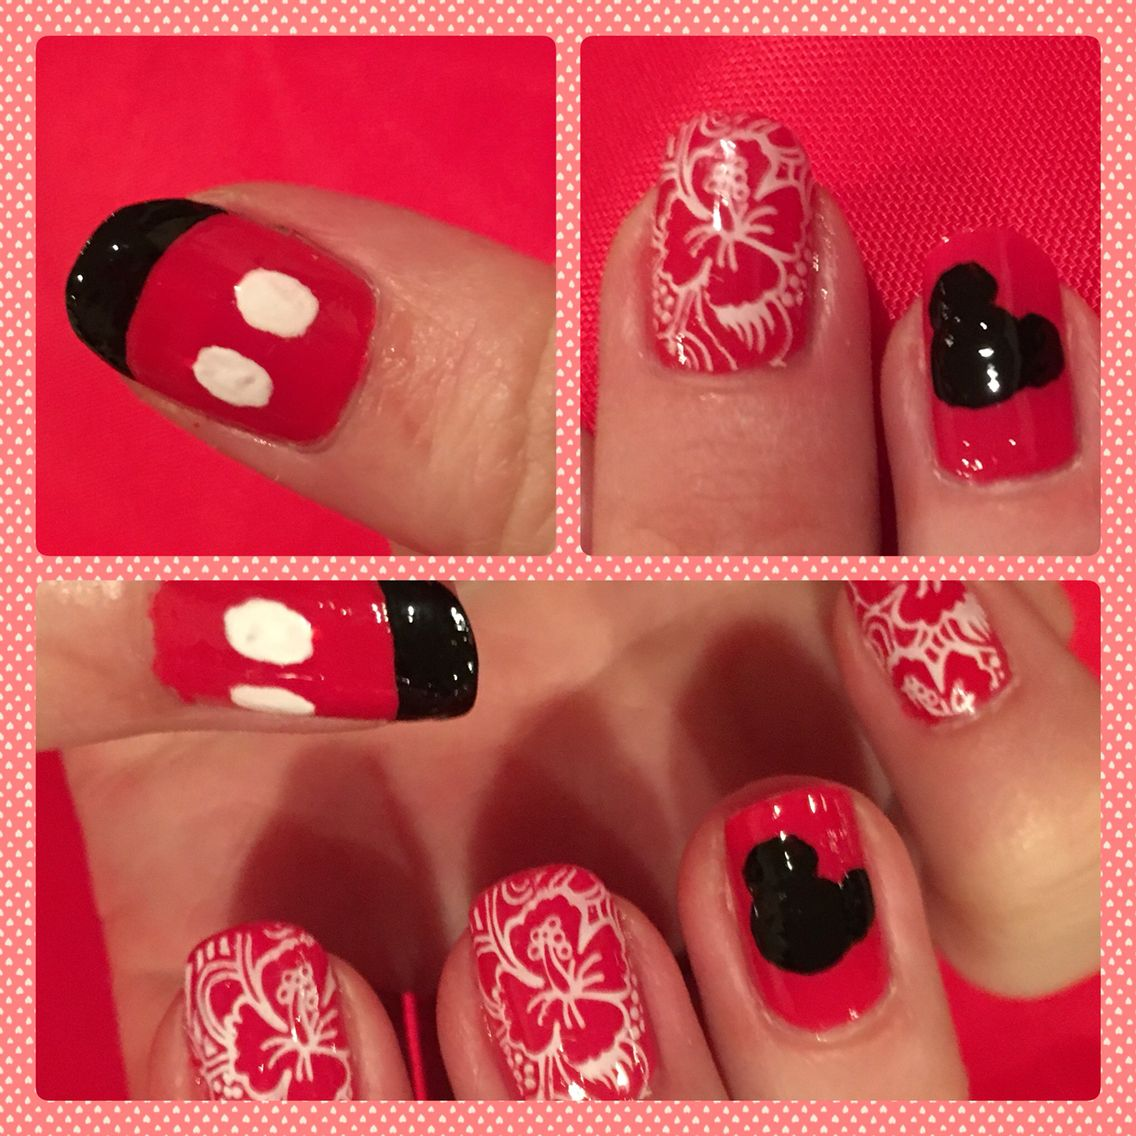 Aulani Inspired Mickey Mouse Nails, Paradise Pier Hotel Vacation Nail Art,  Hibiscus Flowers,